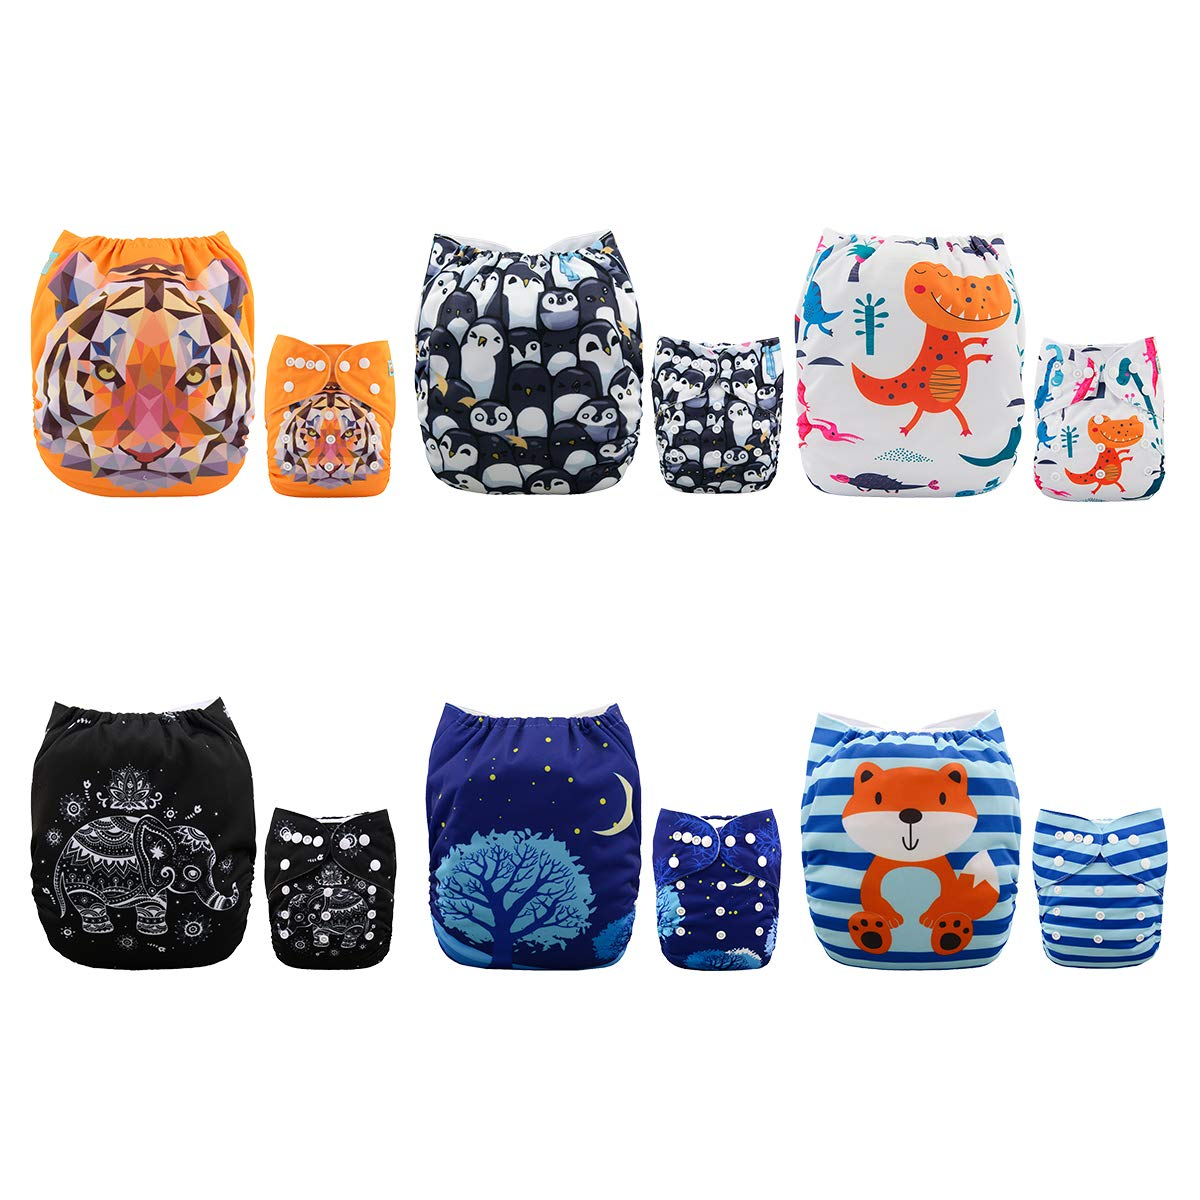 ALVABABY New Design Reuseable Washable Pocket Cloth Diaper 6 Nappies + 12 Inserts 6DM23 by ALVA (Image #1)